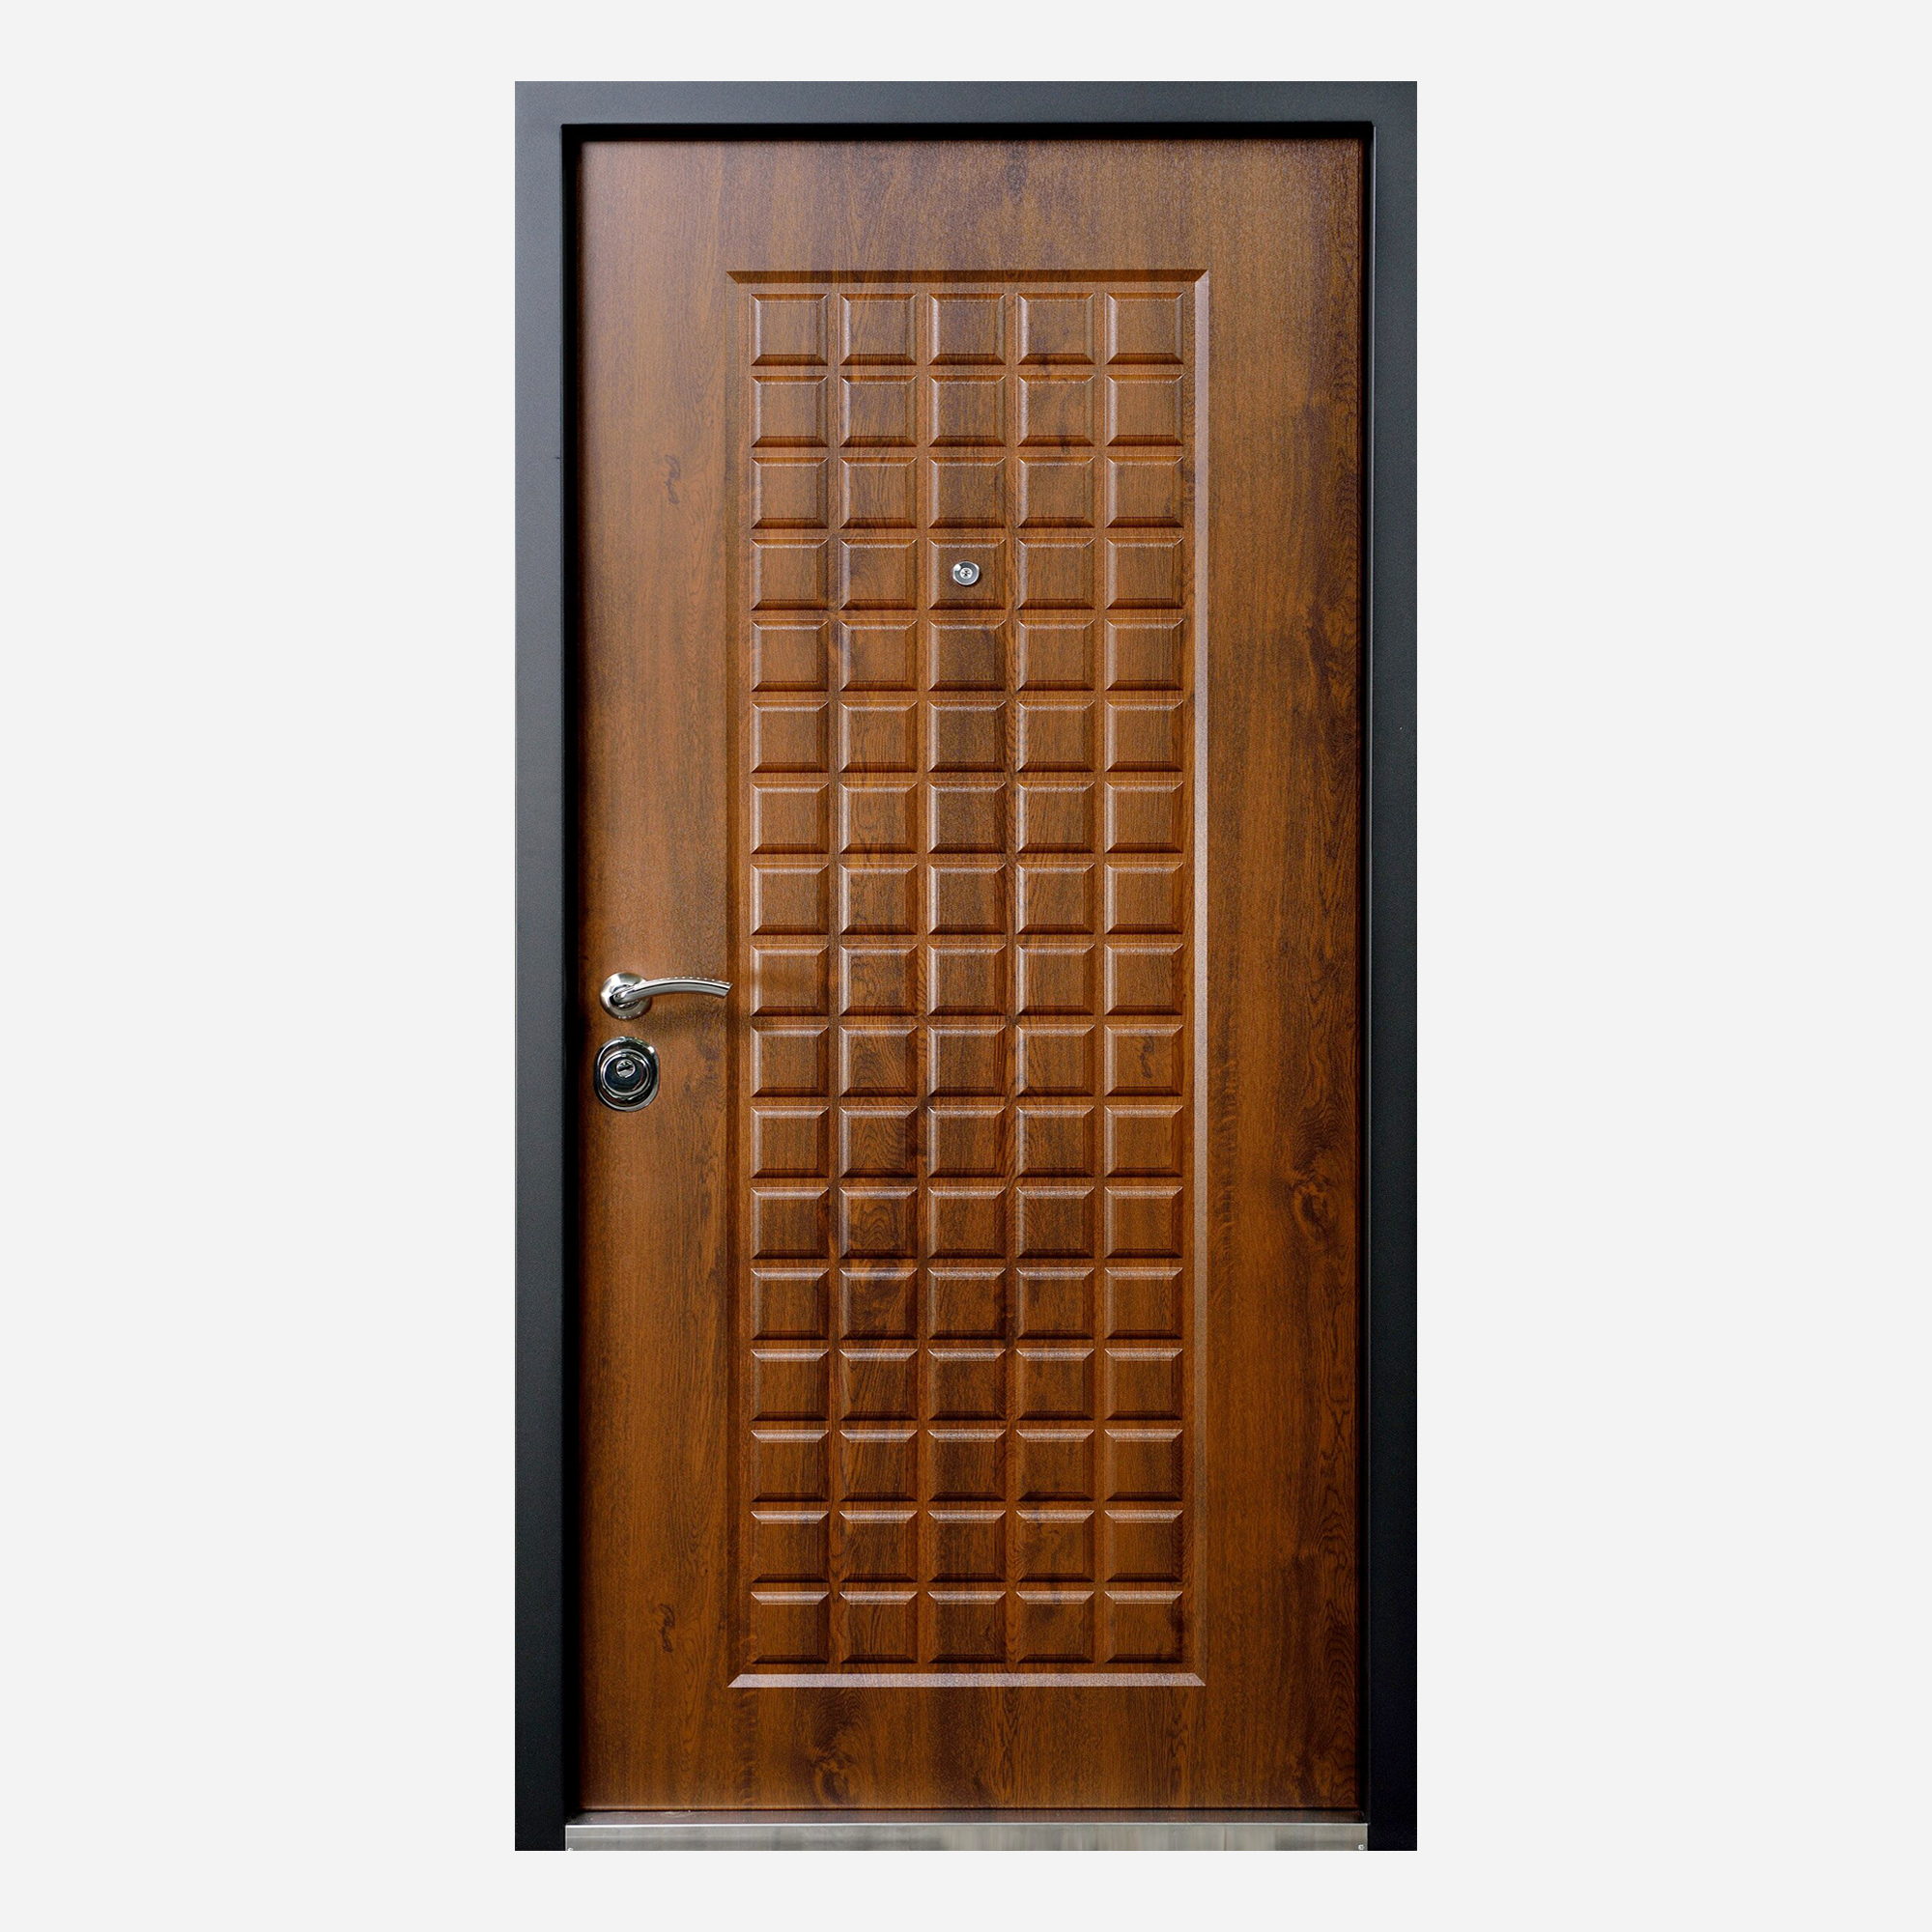 Tokyo Steel Security Entry Door By Novo Porte Usa